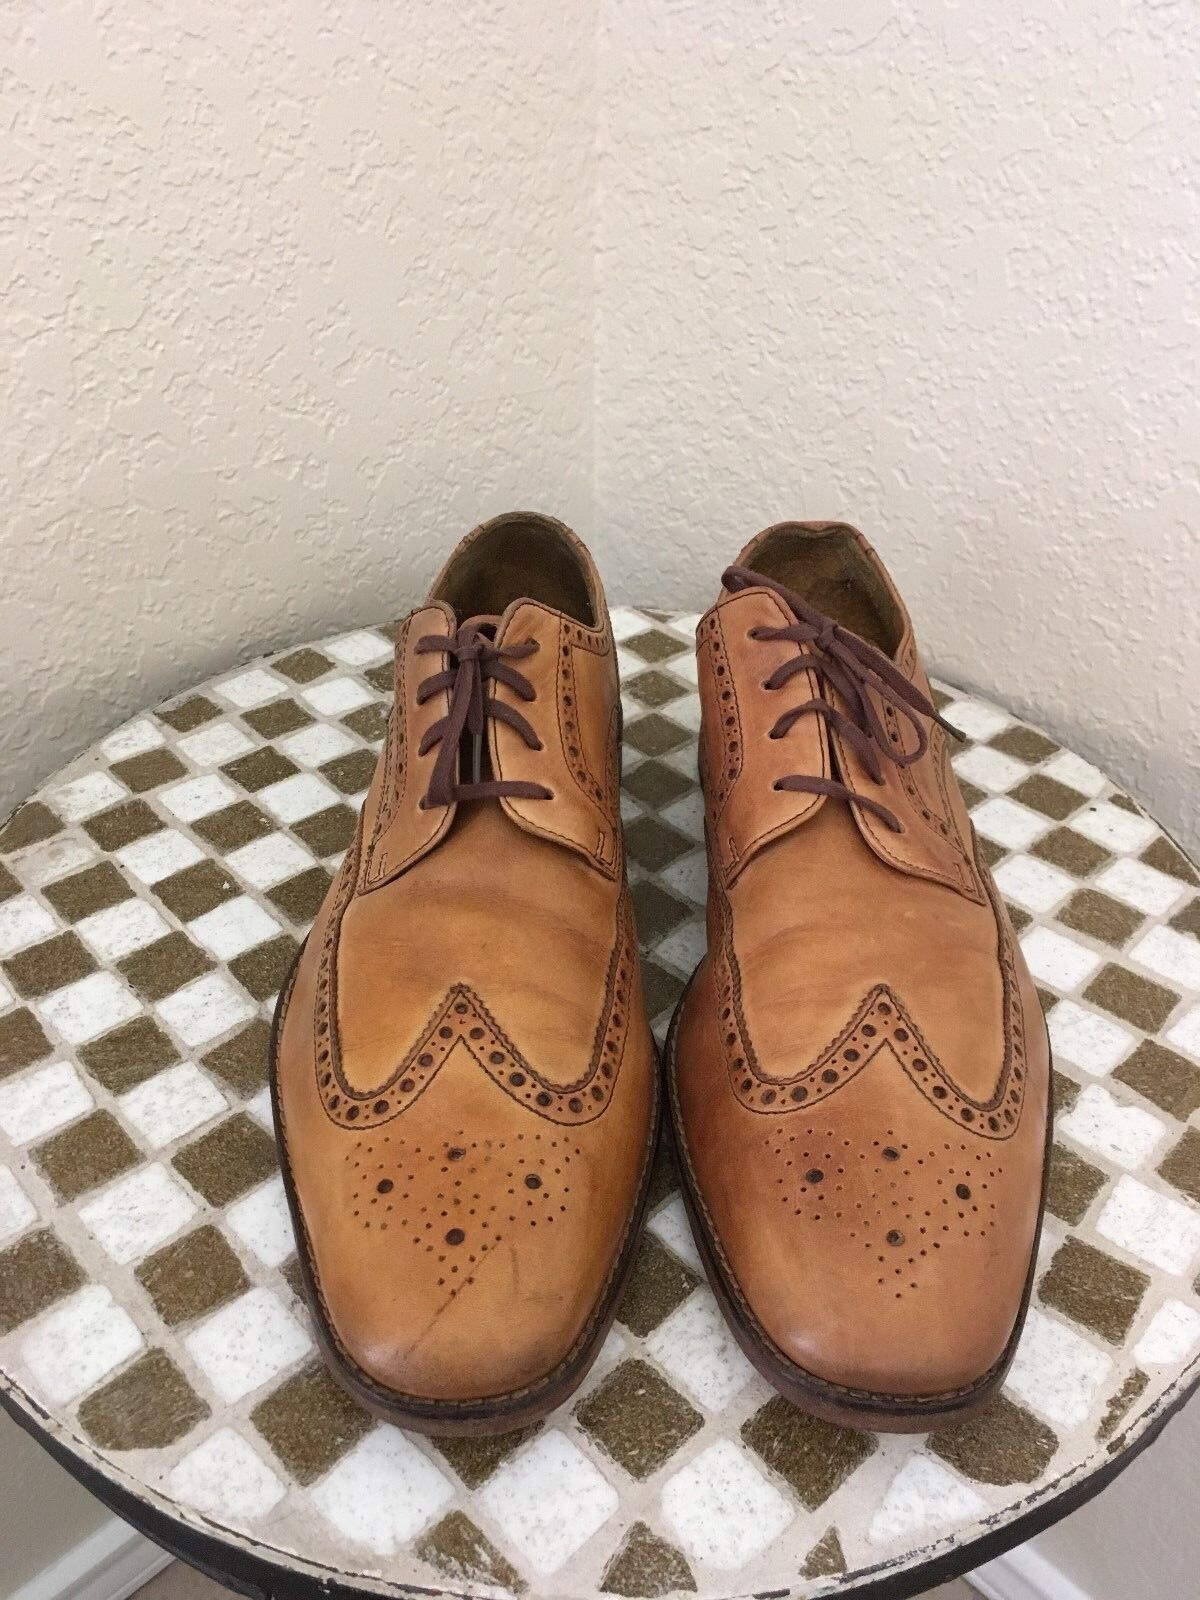 BROWN COLE HAAN WING TIP POWER DRIVING OXFORD SHOES 11.5 M